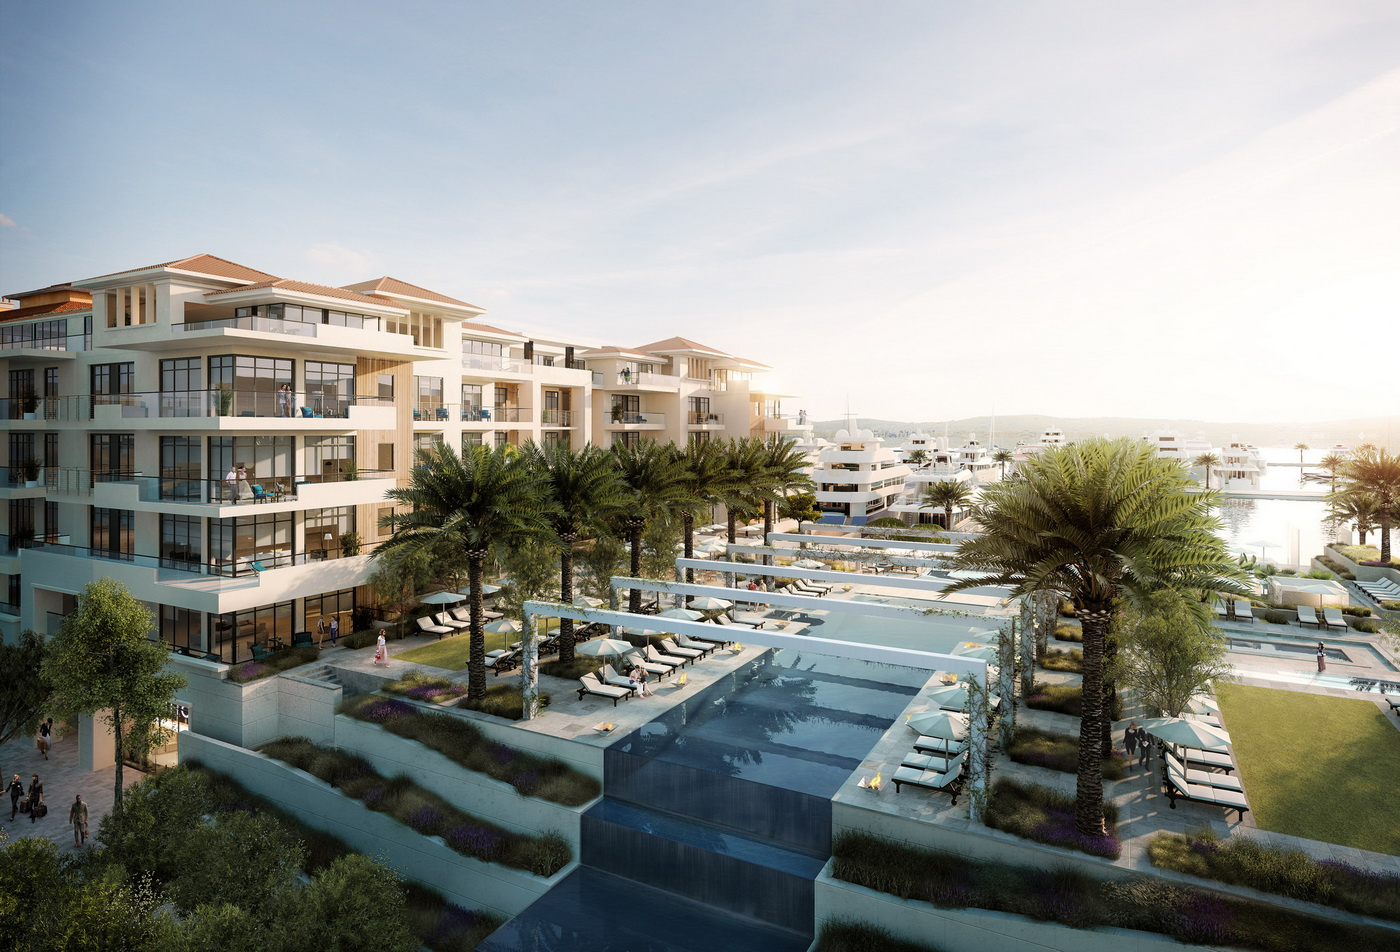 Porto Montenegro - Regent Hotel Residences from north east